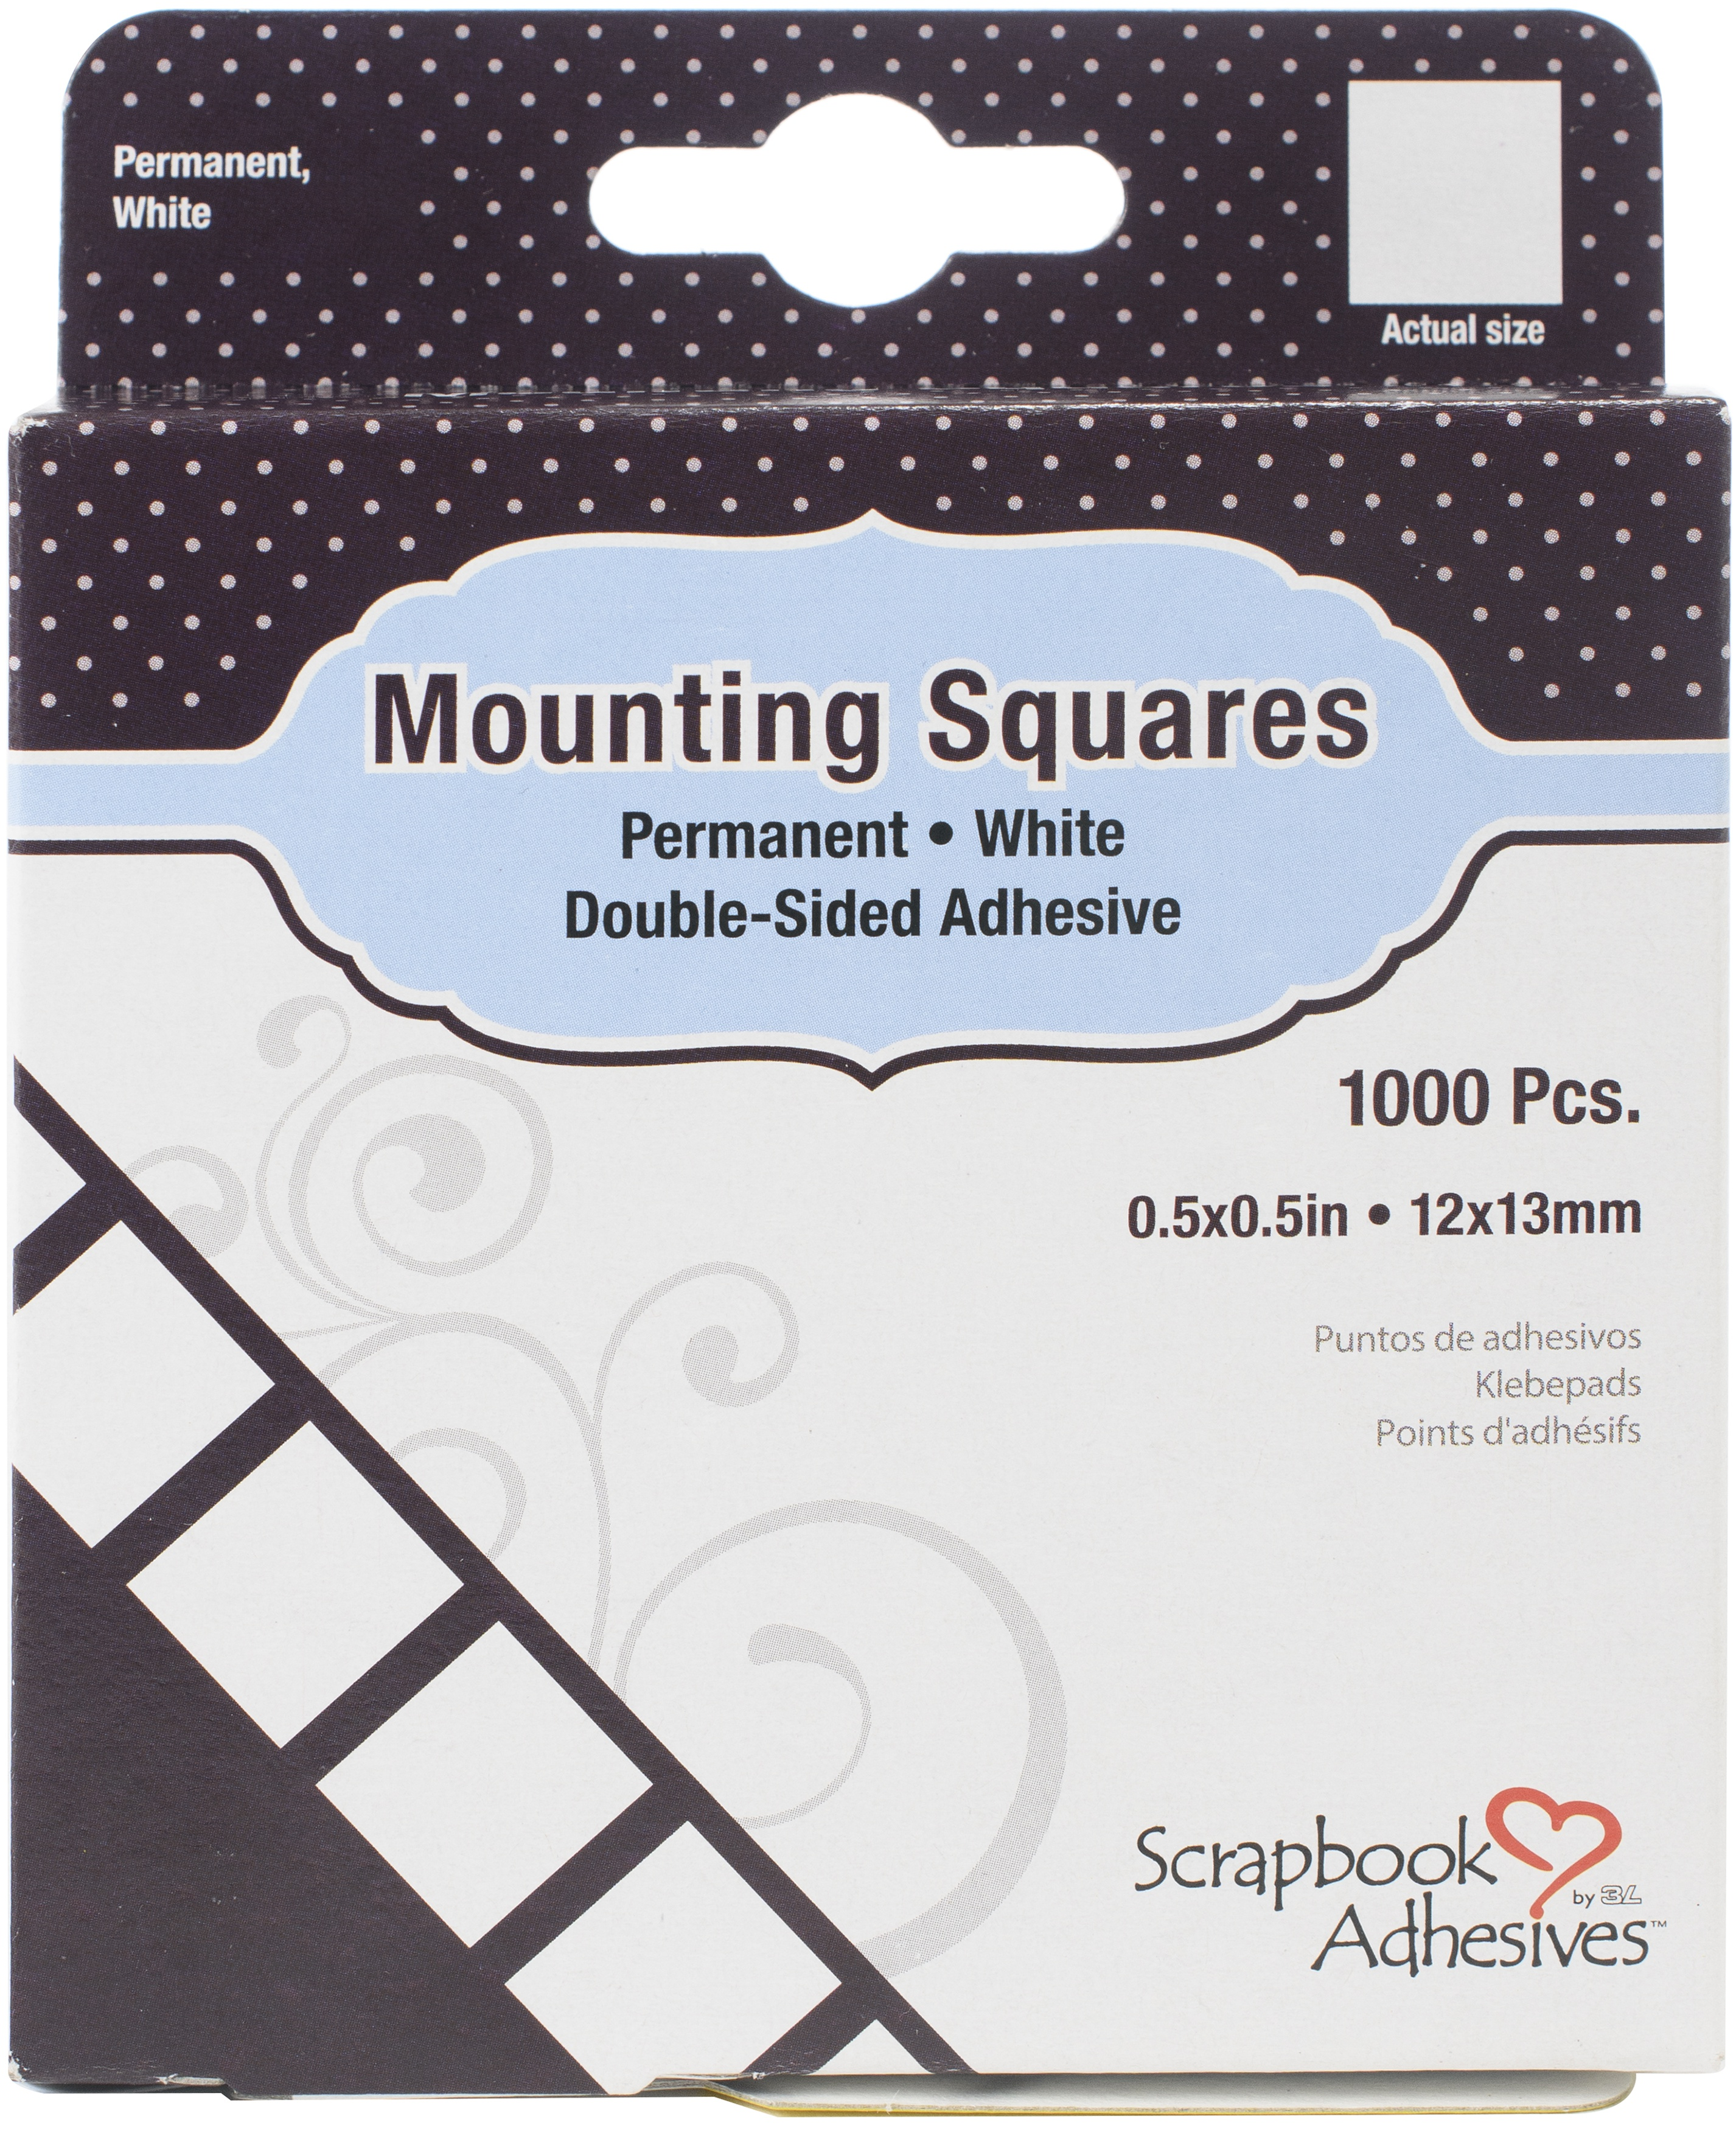 Scrapbook Adhesives Mounting Squares 1000/Pkg-Permanent, White, .5X.5